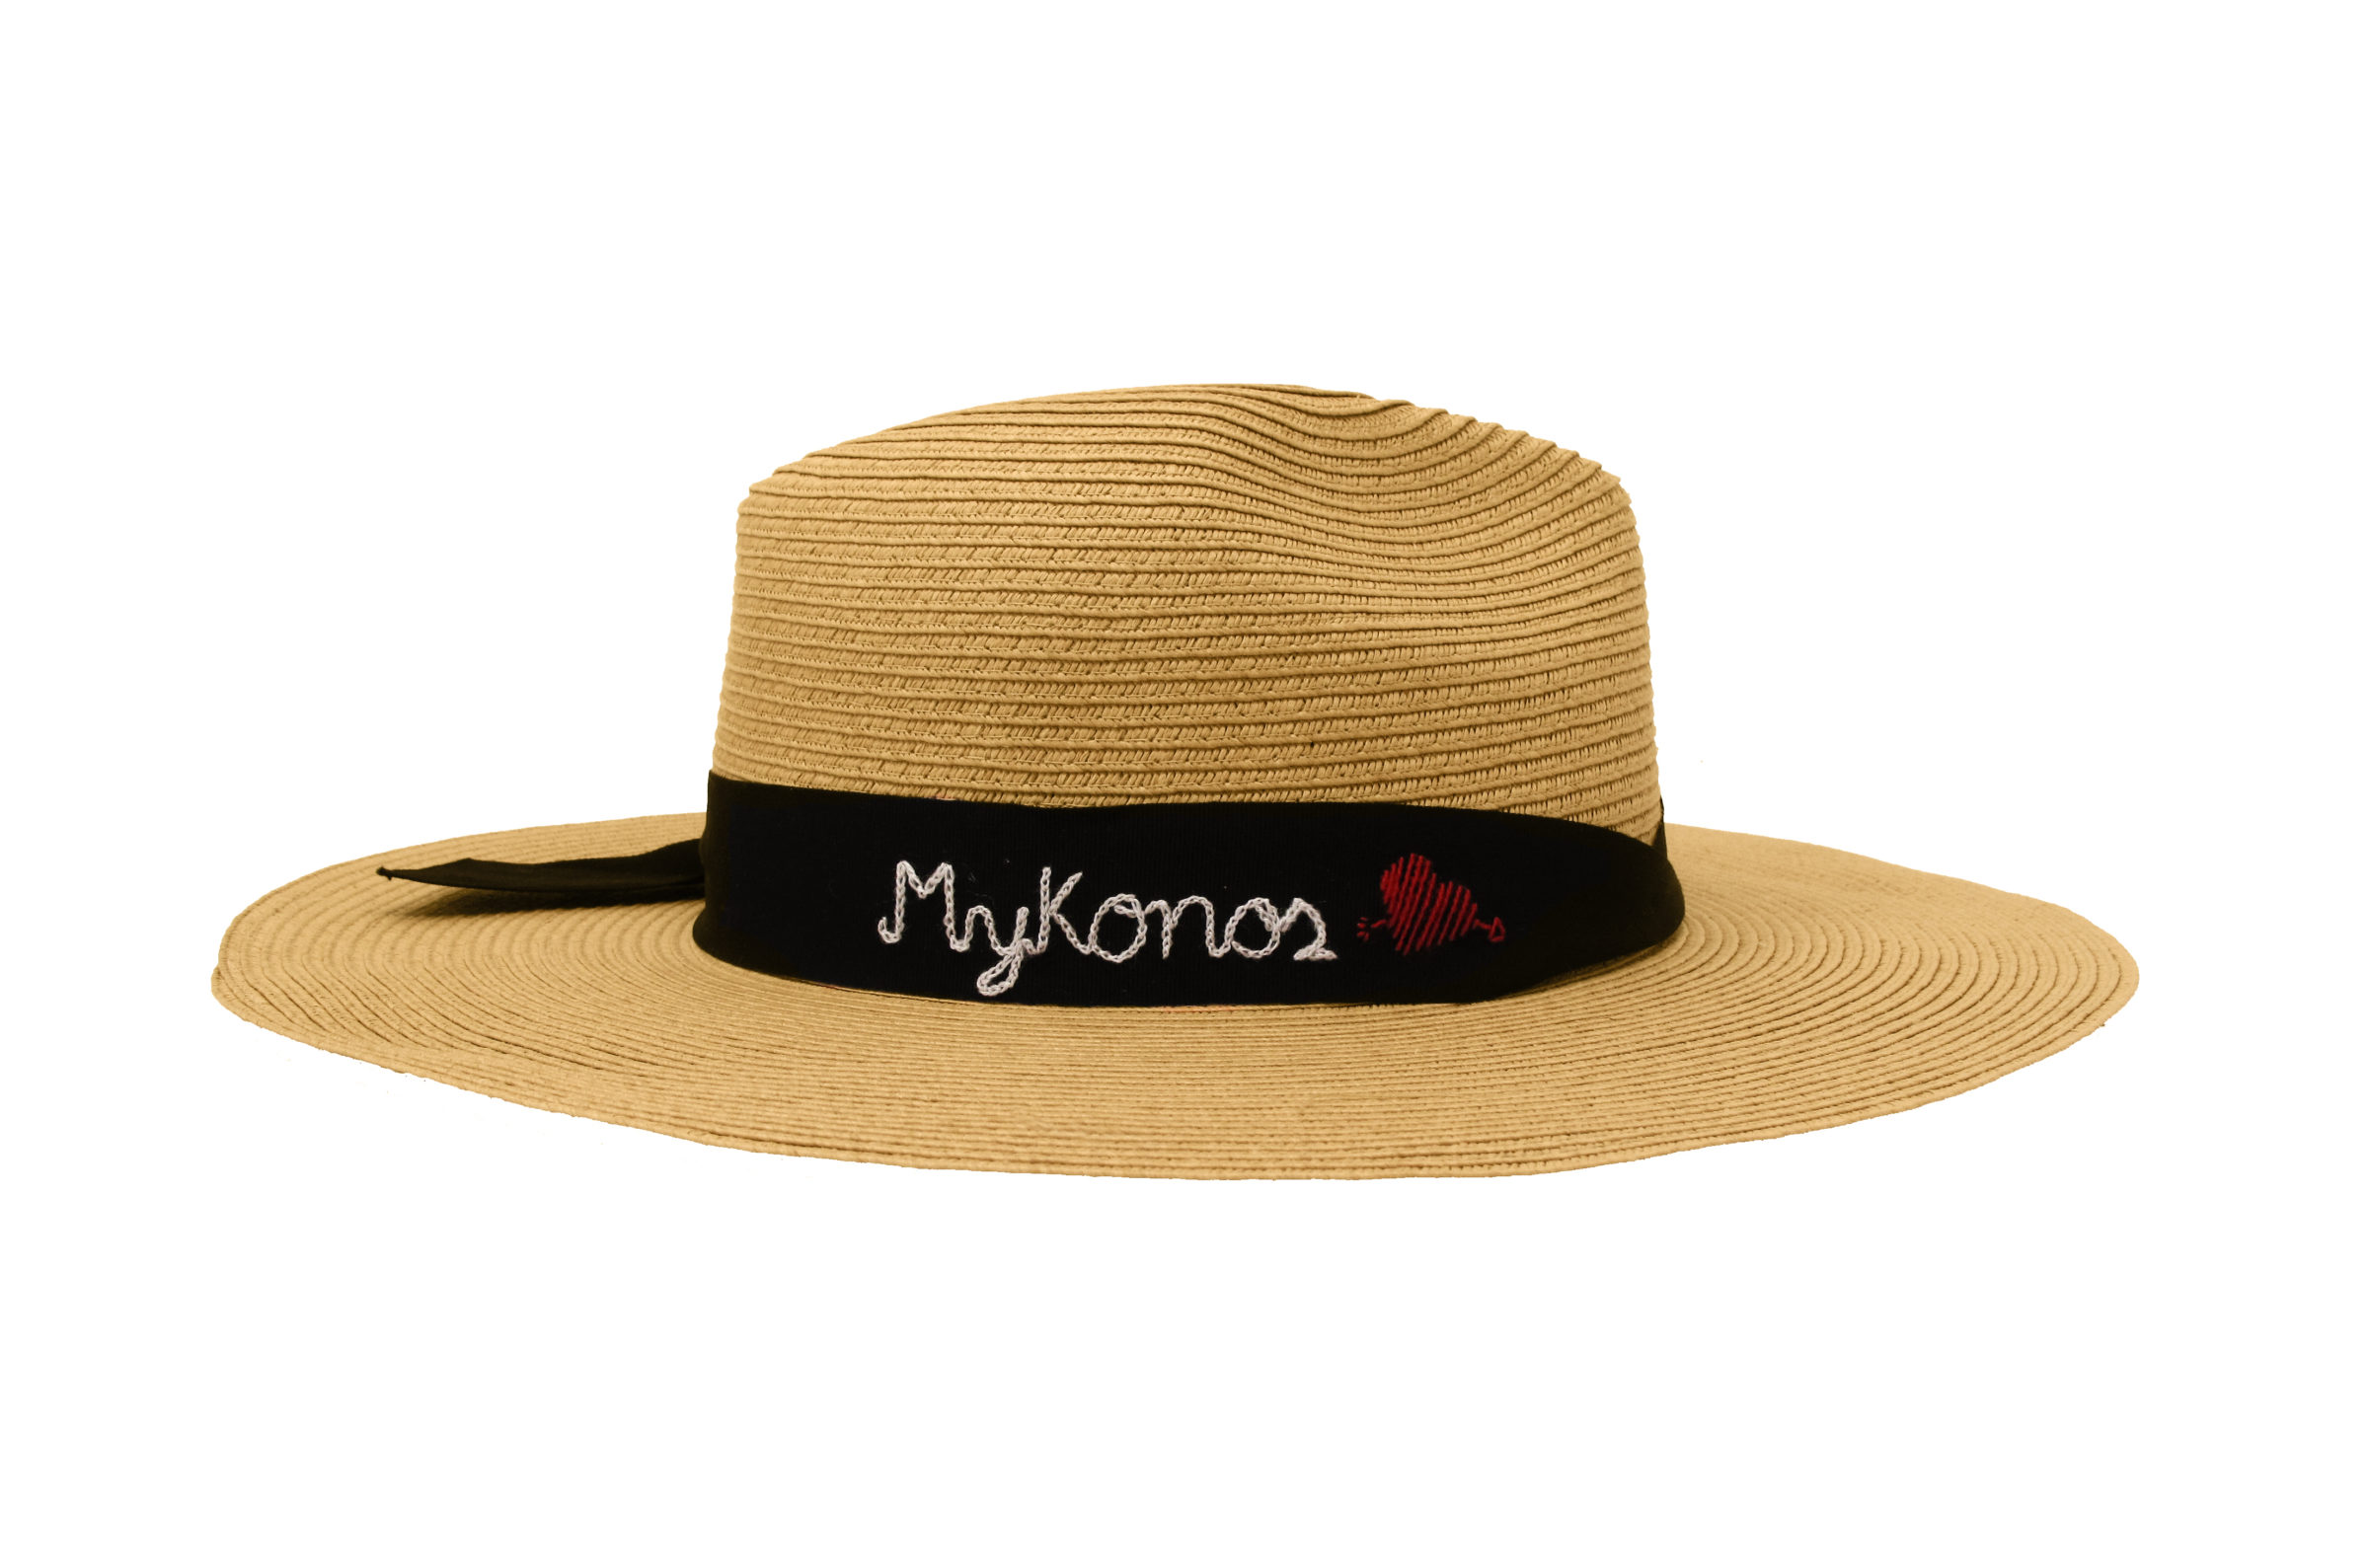 Beachy hat to wear on your honeymoon